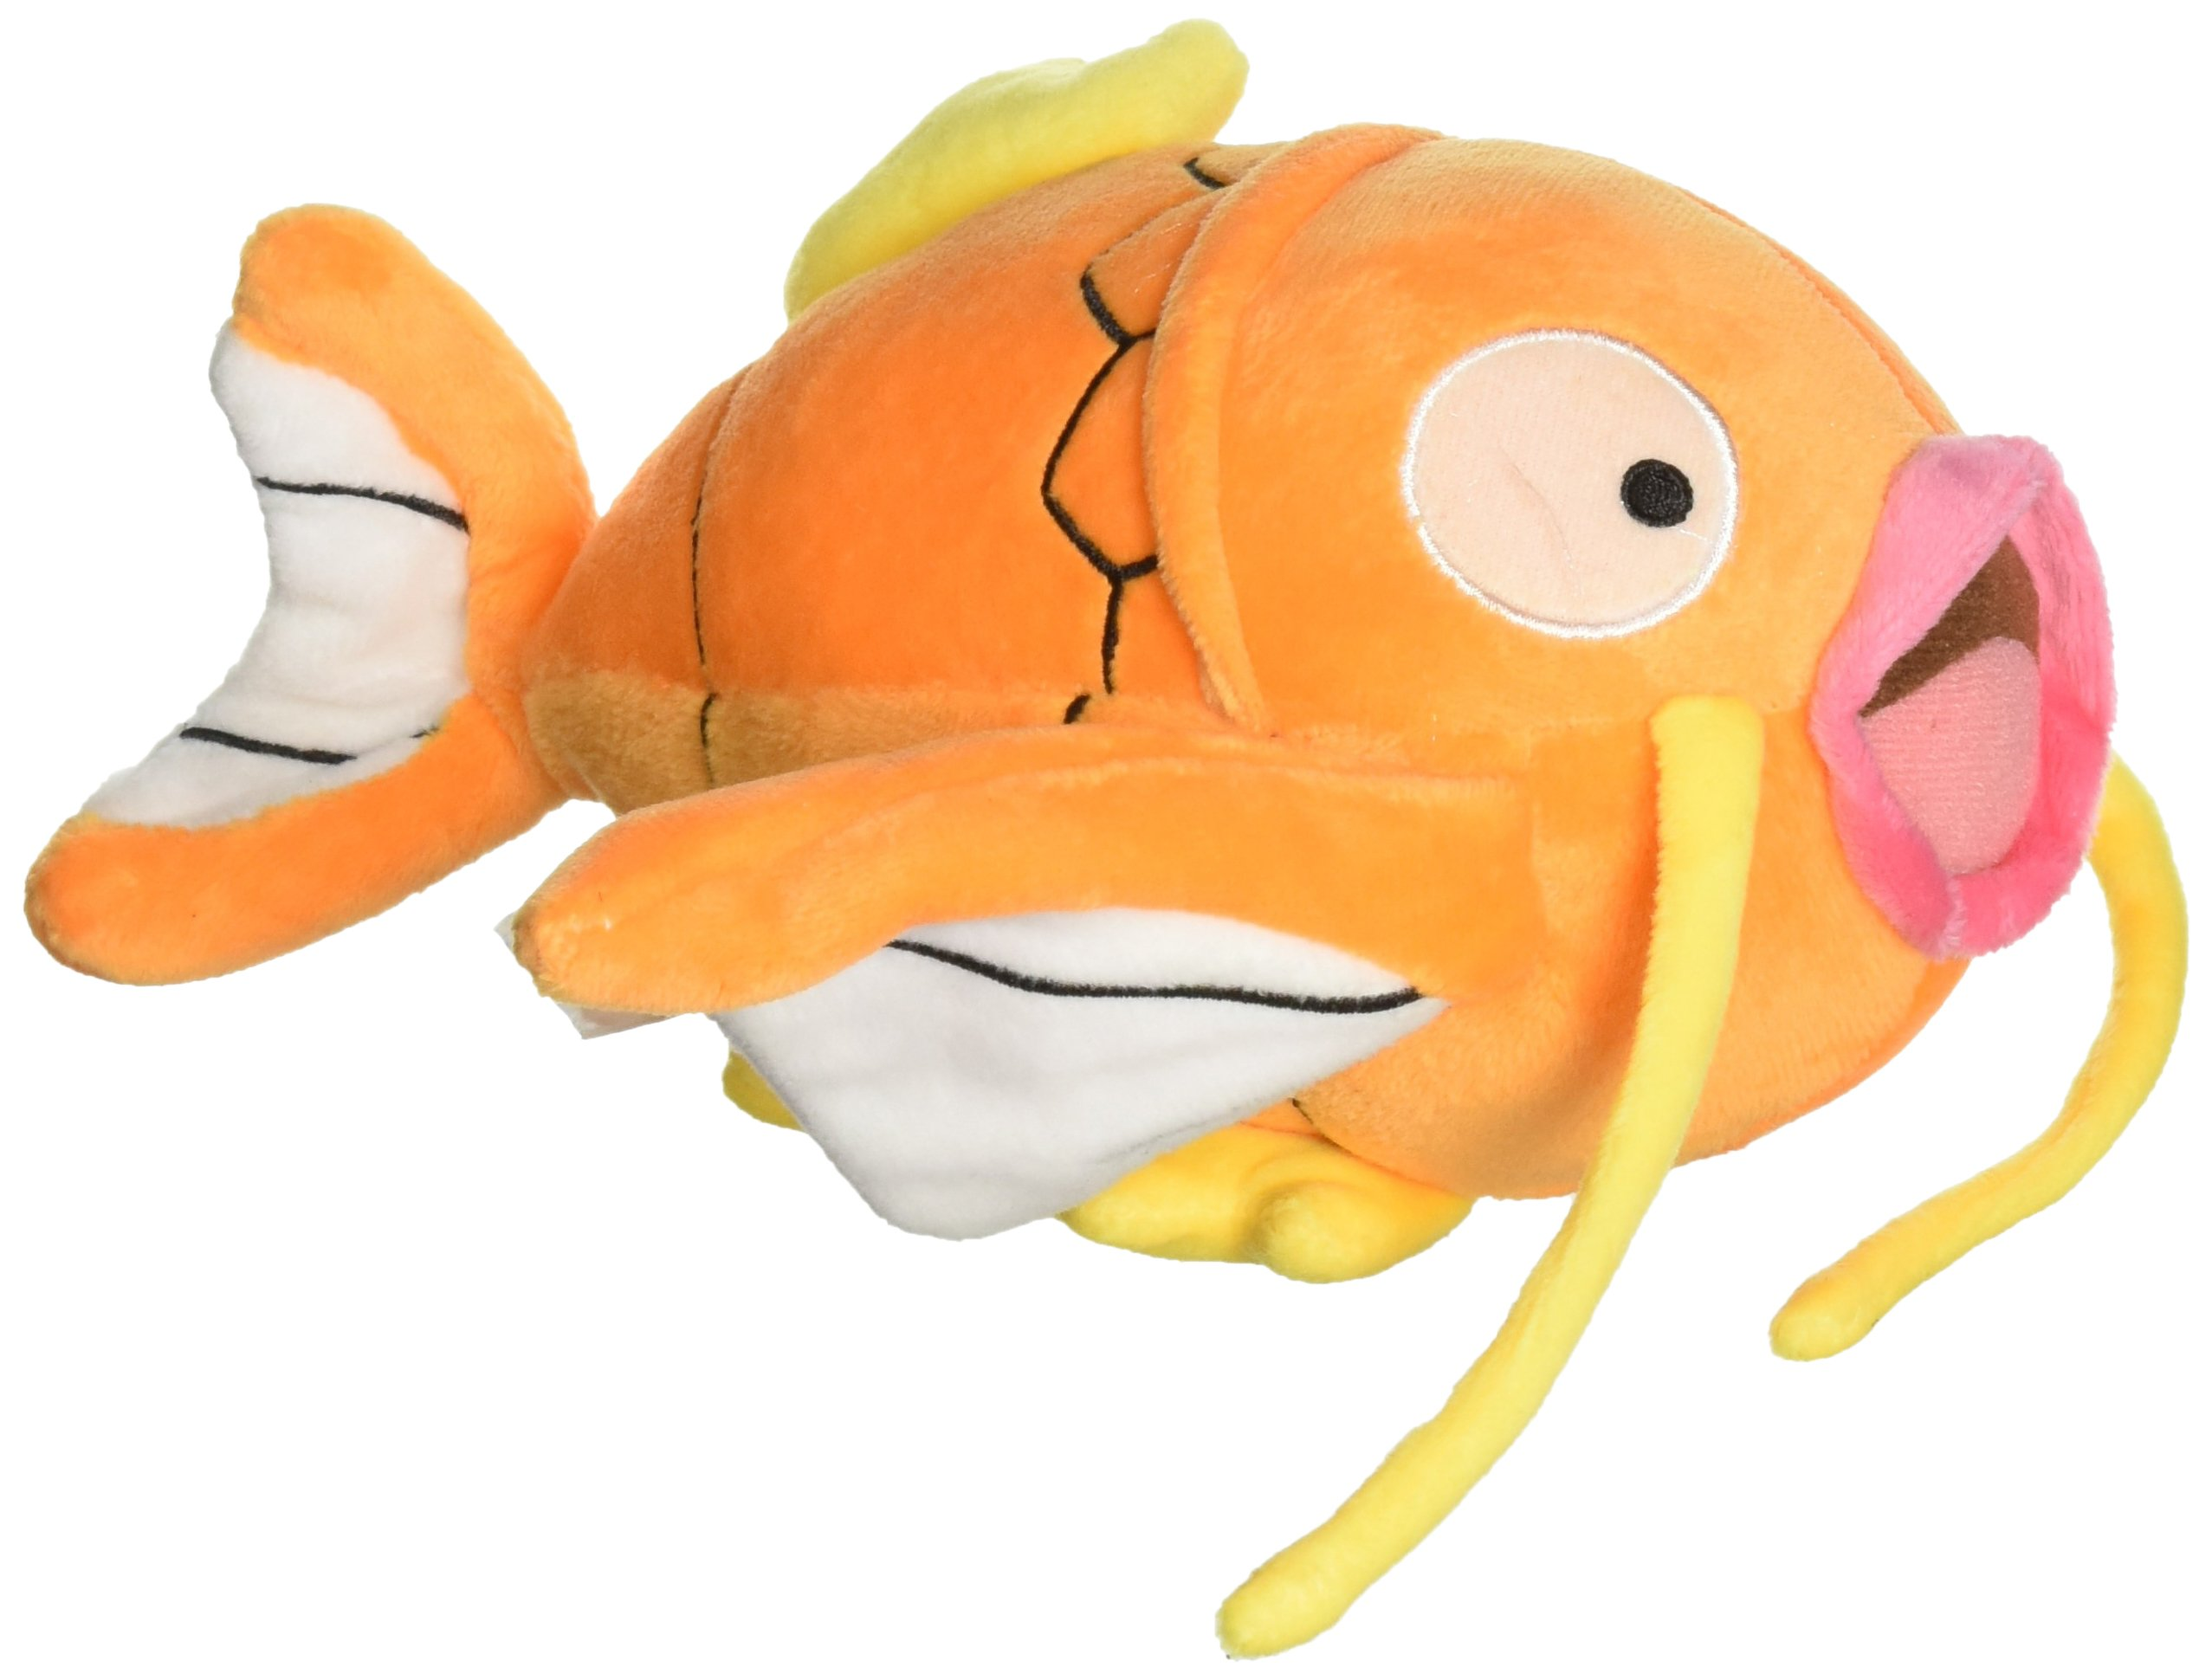 Stuffed animals magikarp fish plush toy pokemon gold for Fish stuffed animal